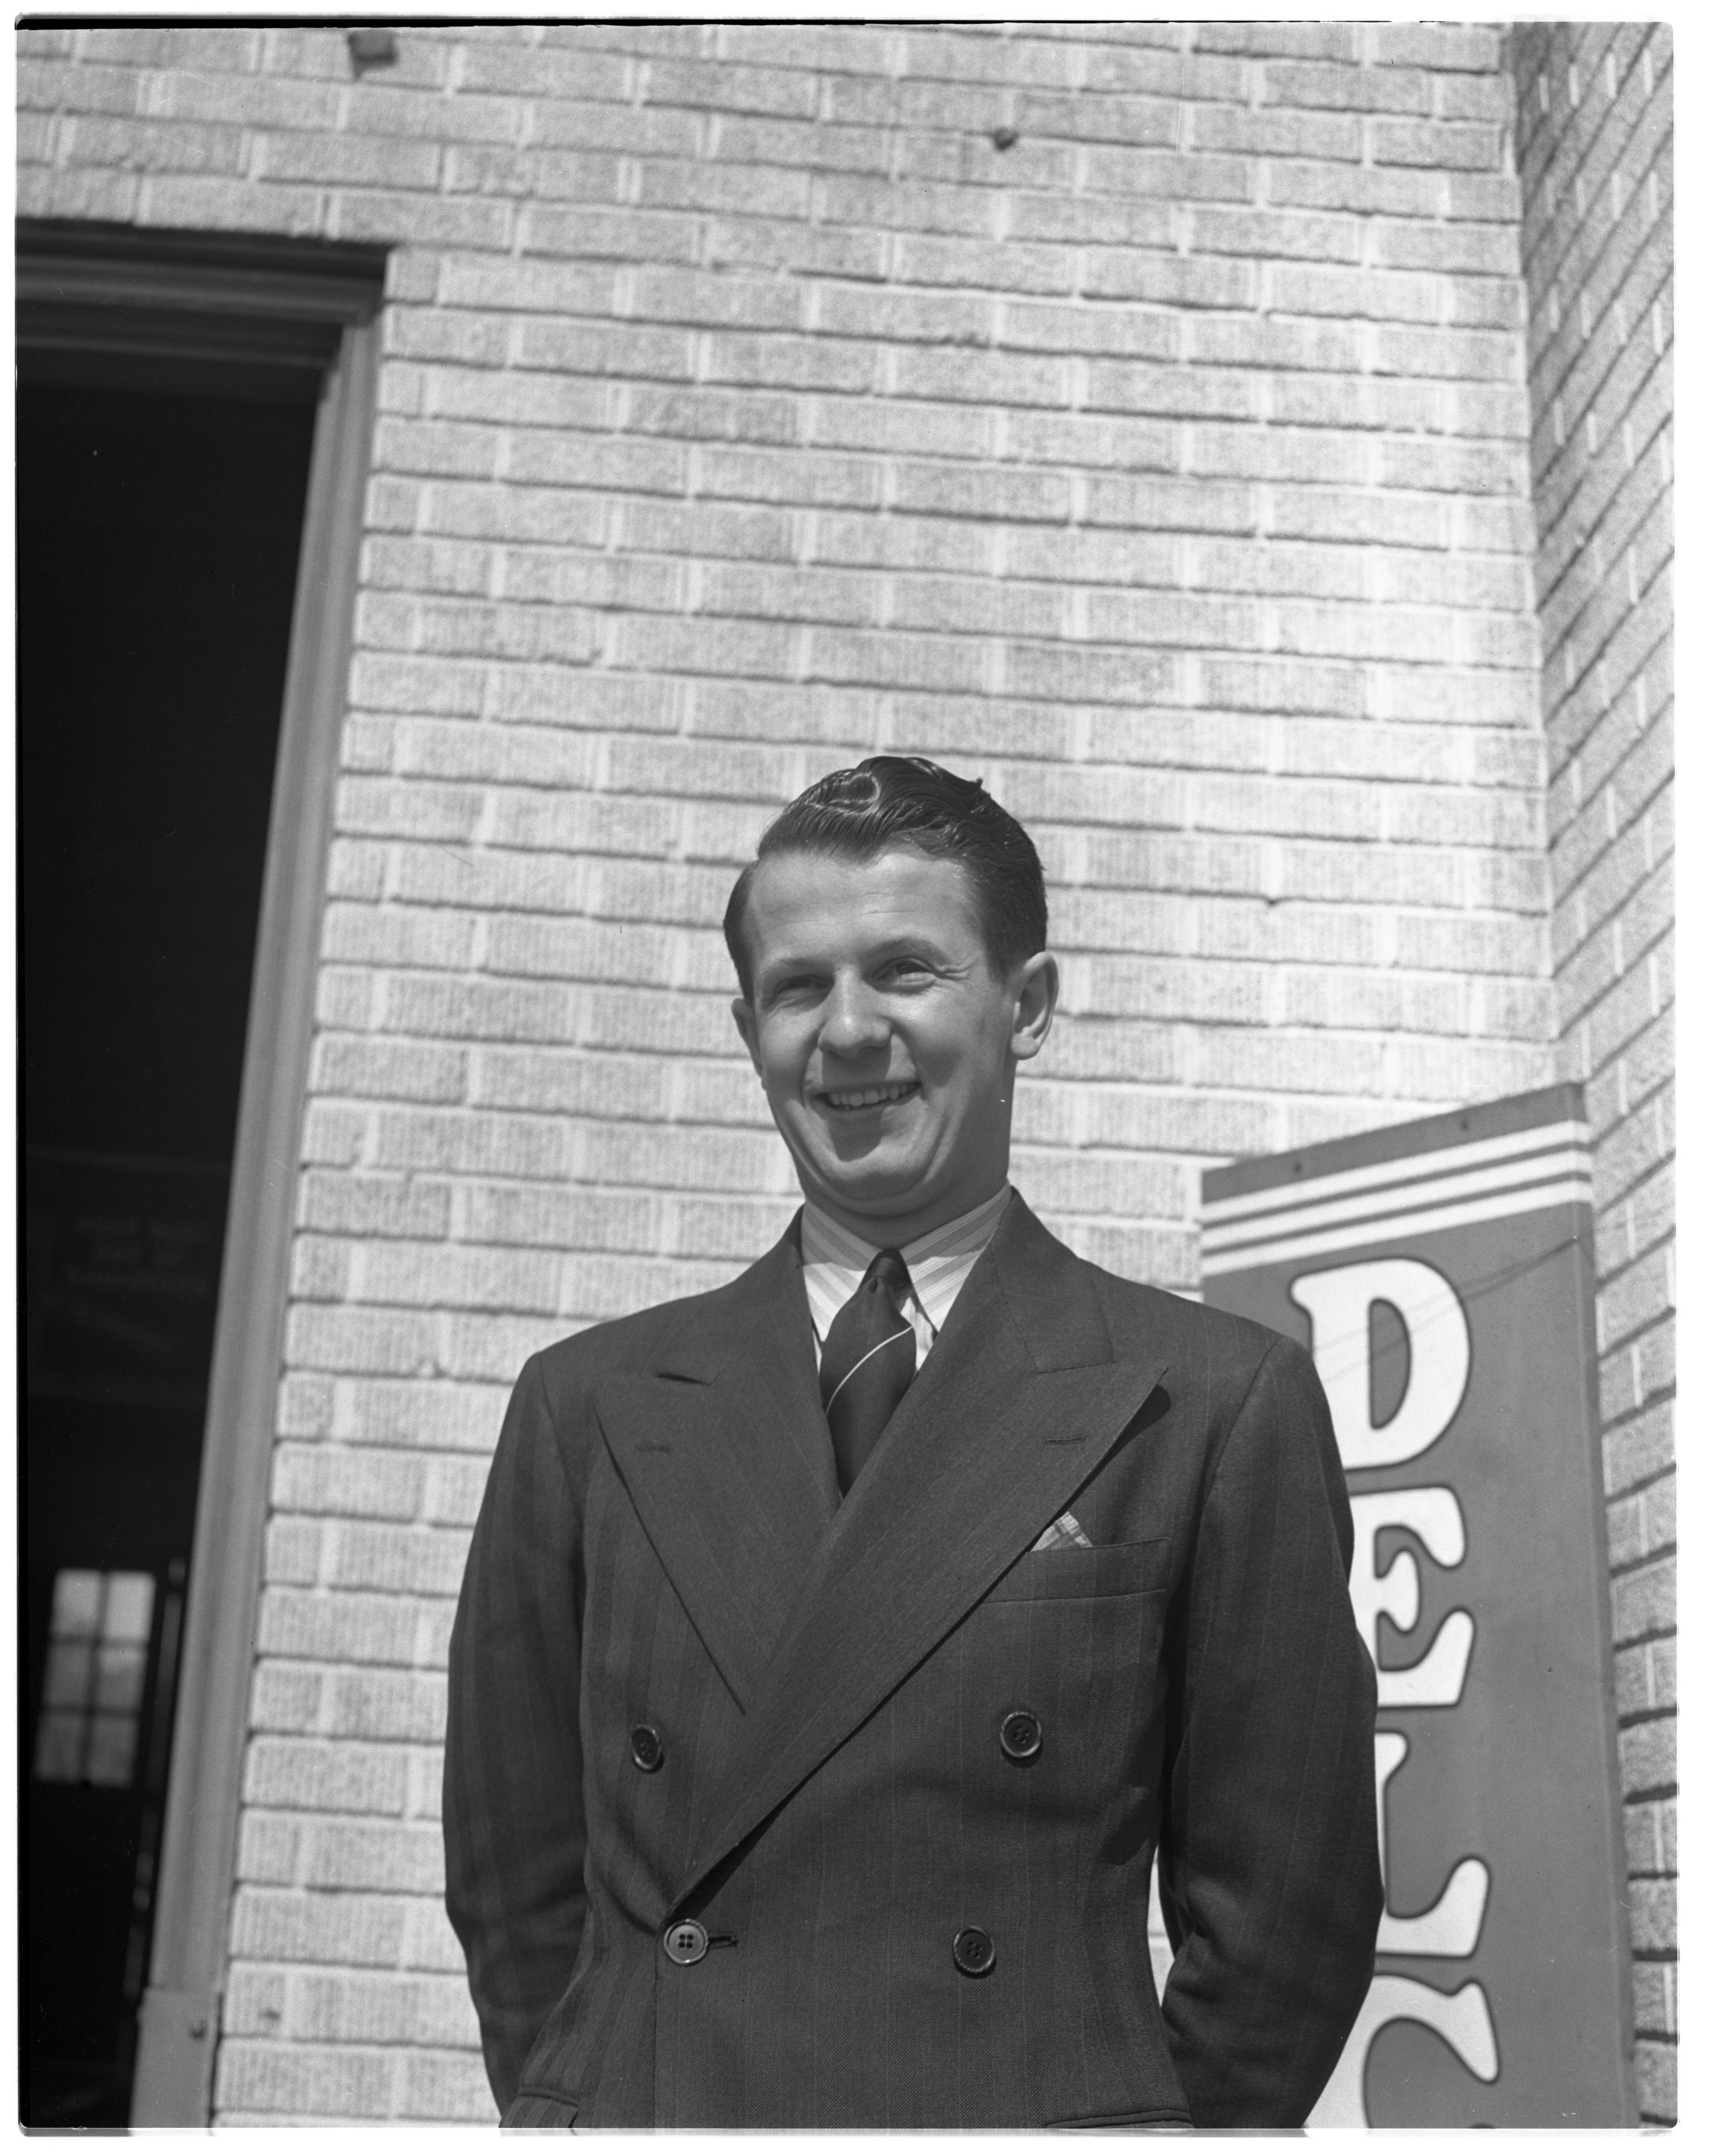 Dean Chappell, Owner - C and J Tire Service, May 1940 image